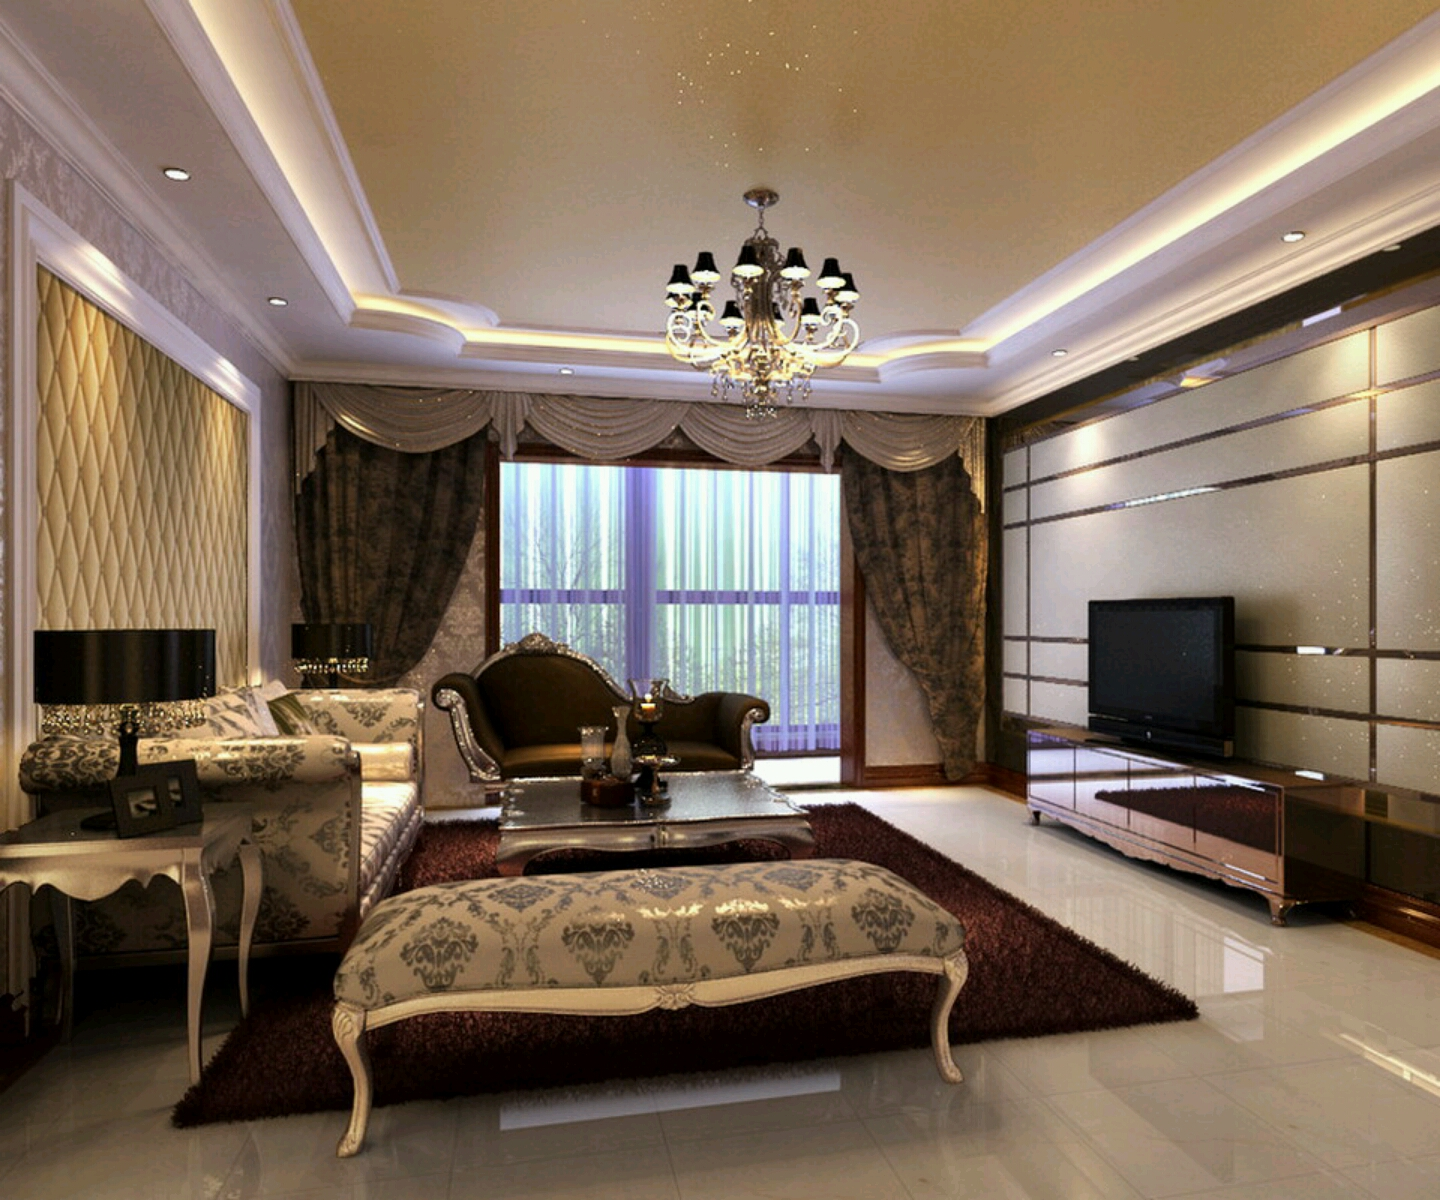 New home designs latest luxury homes interior decoration for Home decor photos living room